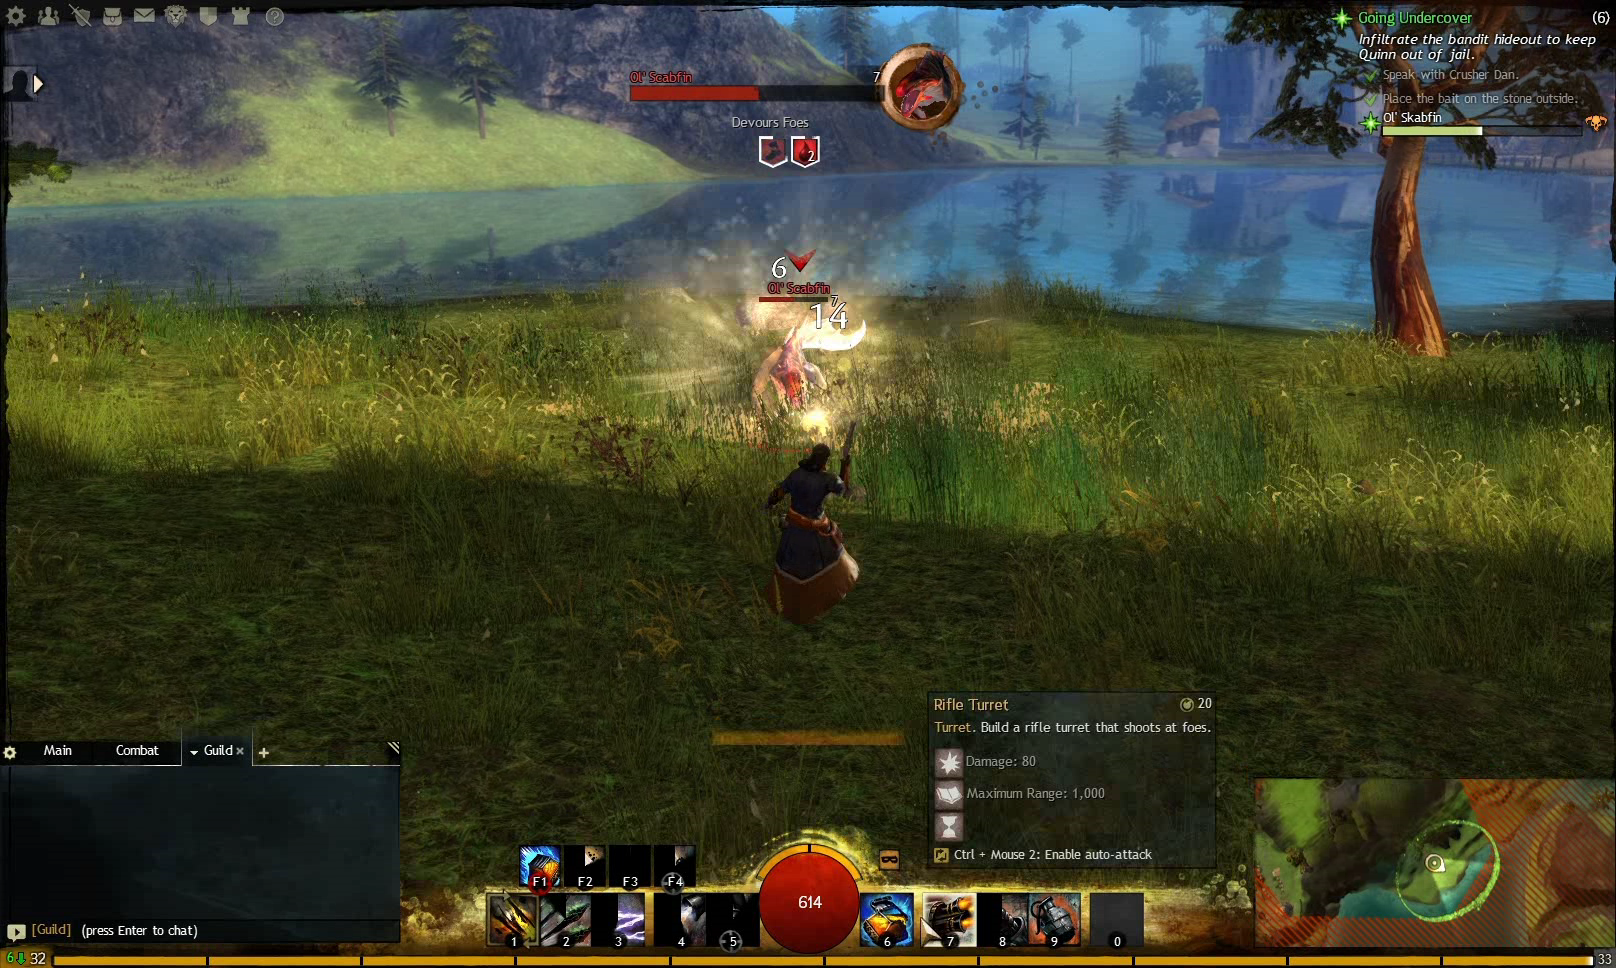 Guild Wars 2 - Quest Guide - Going Undercover - Human Street Rat